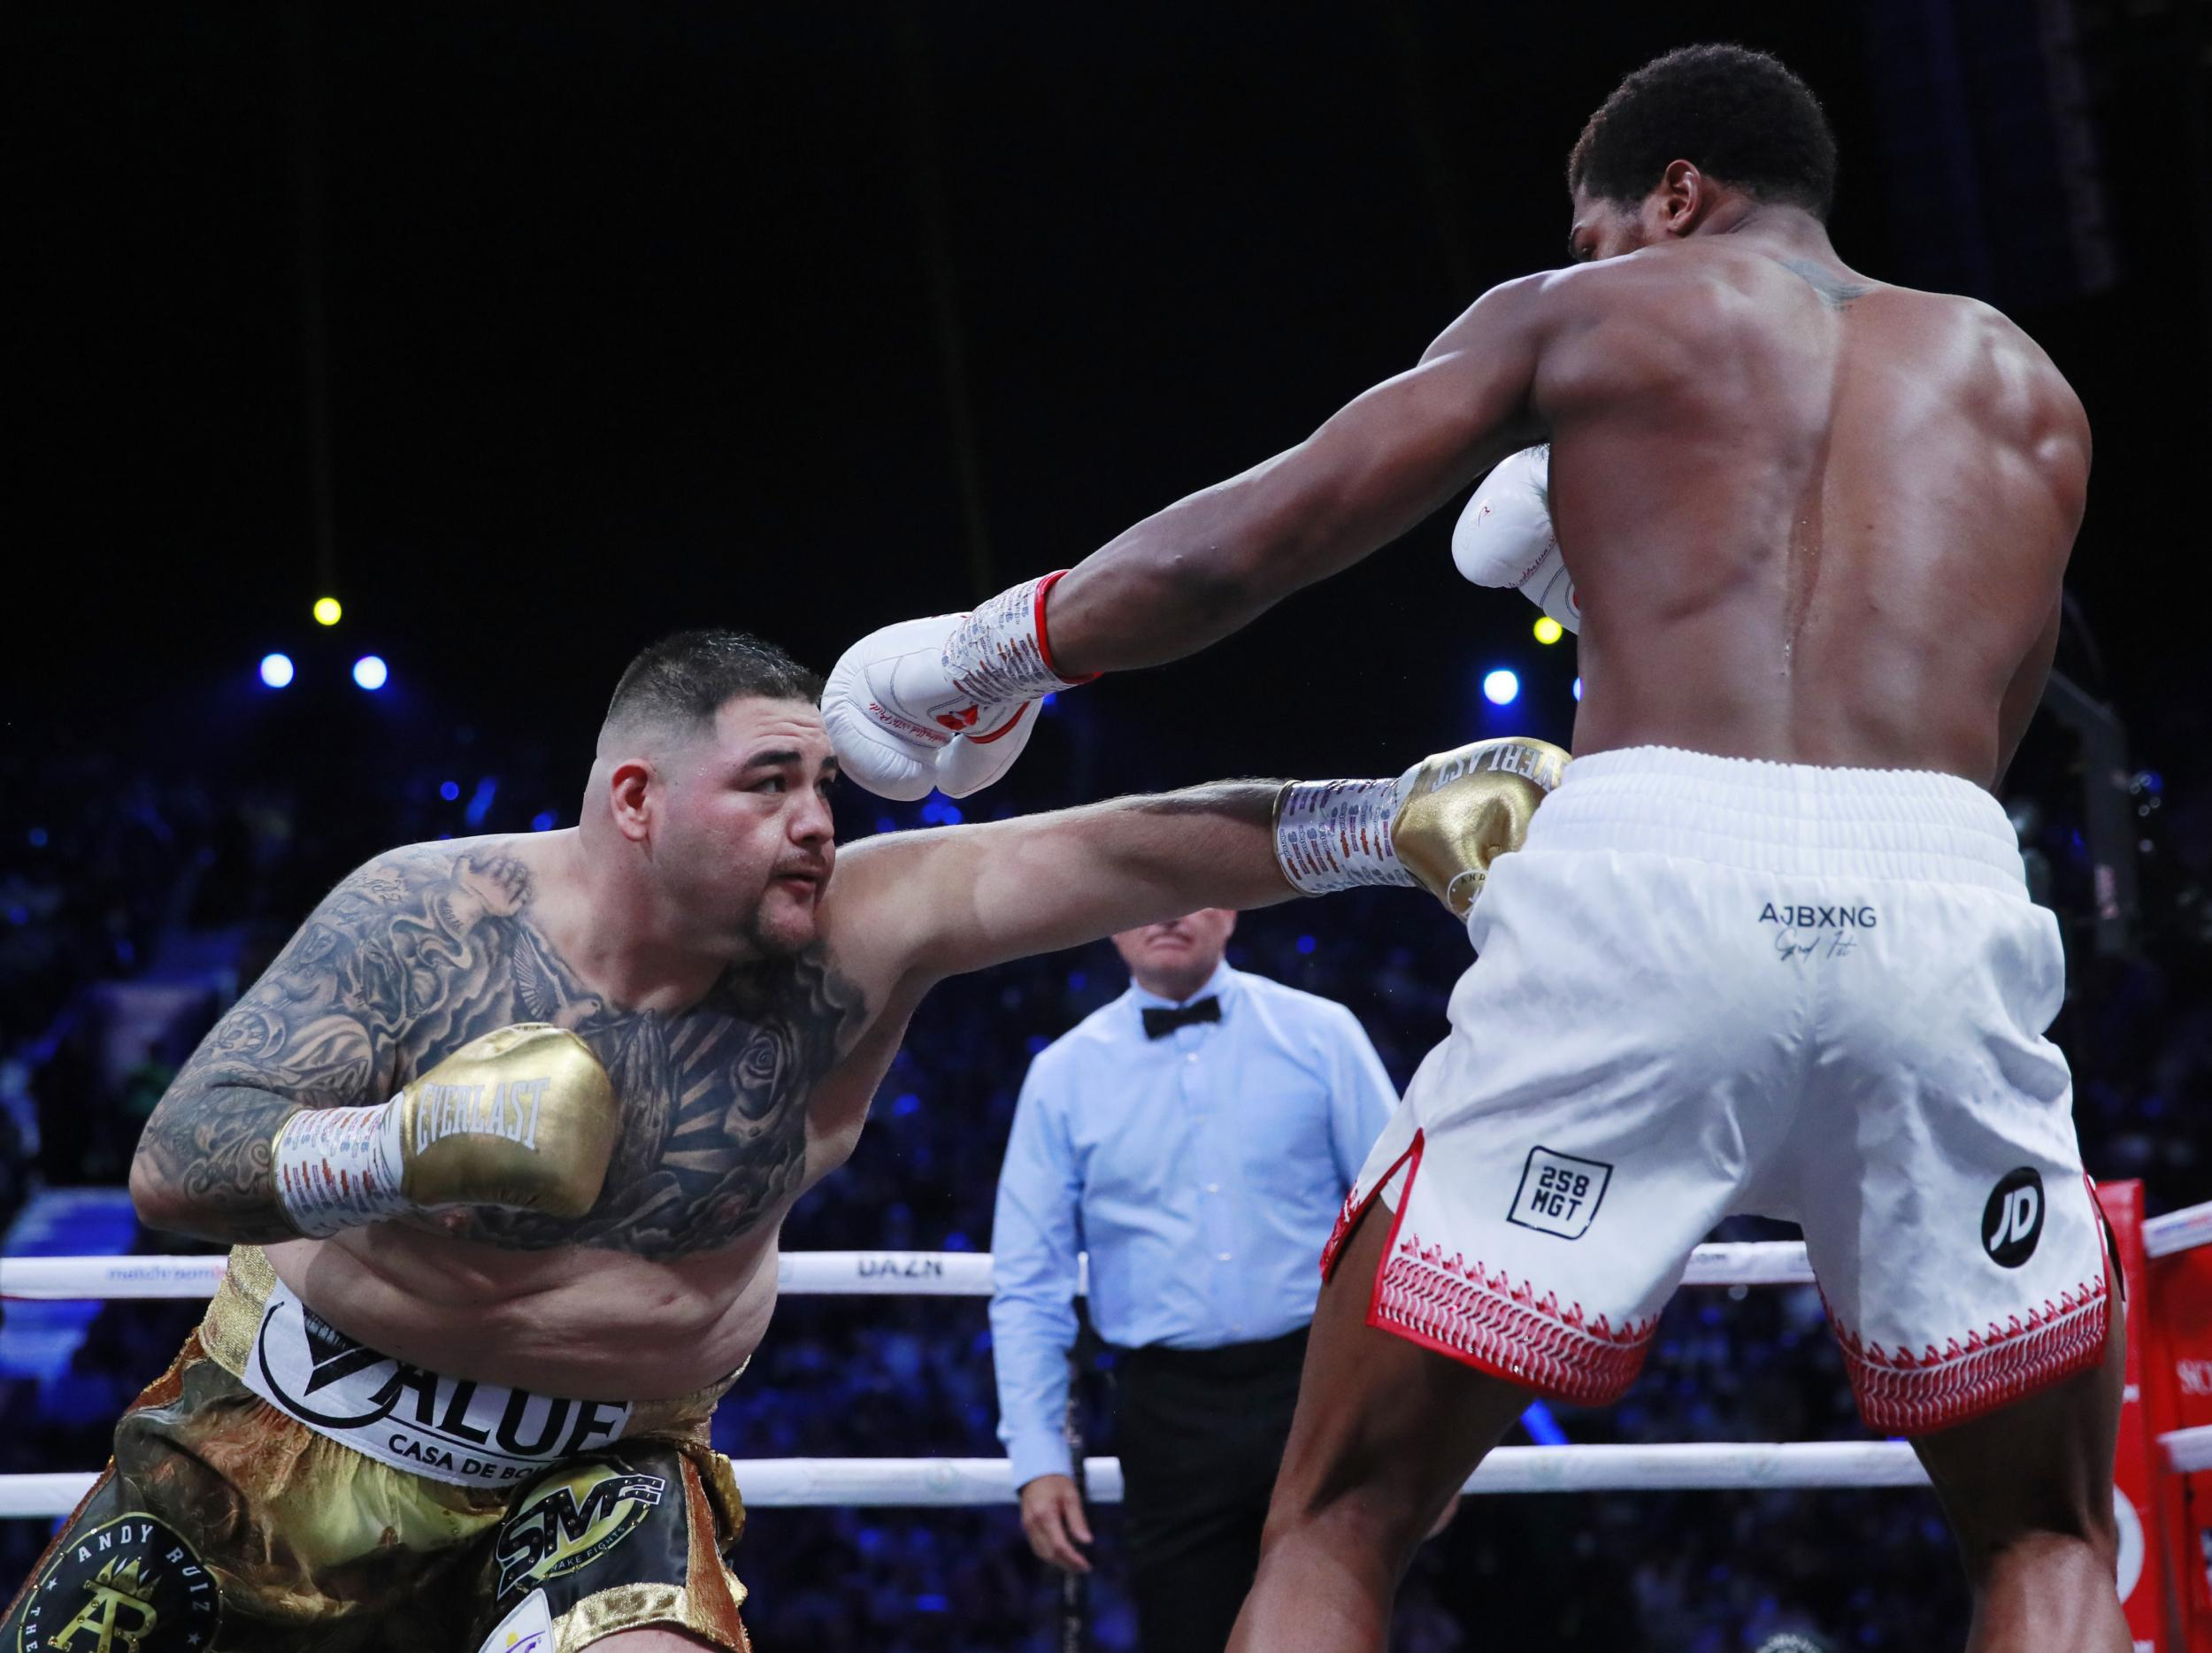 Anthony Joshua vs Andy Ruiz 2: What time does fight start in UK? Ring walks, TV channel and more